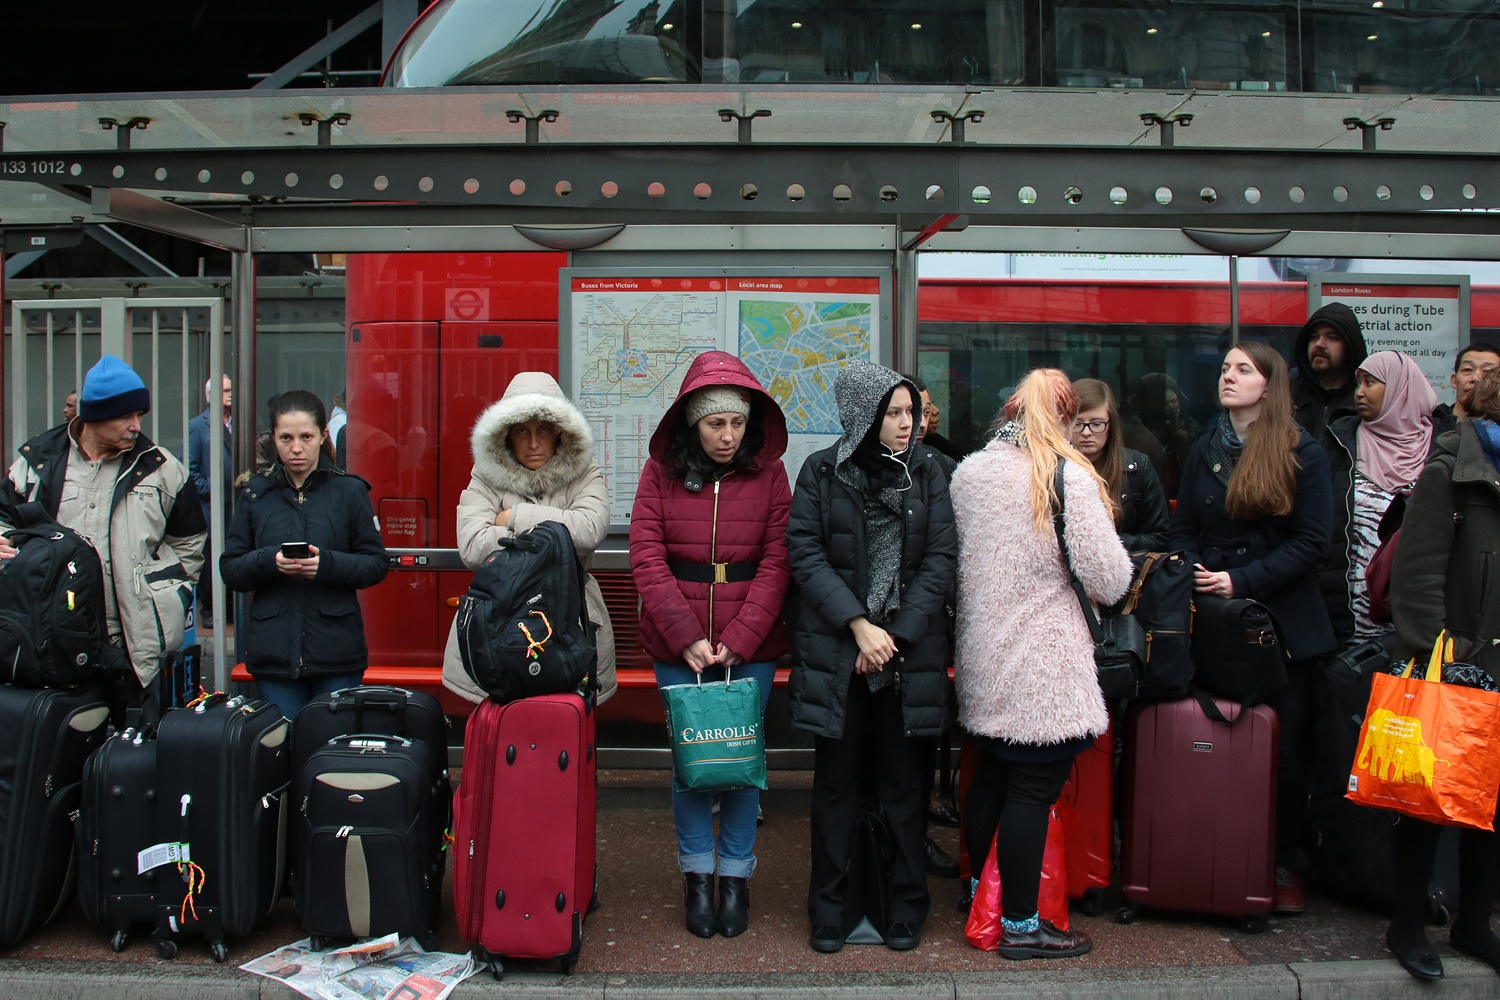 London travellers hit by crowding as Tube strike goes ahead